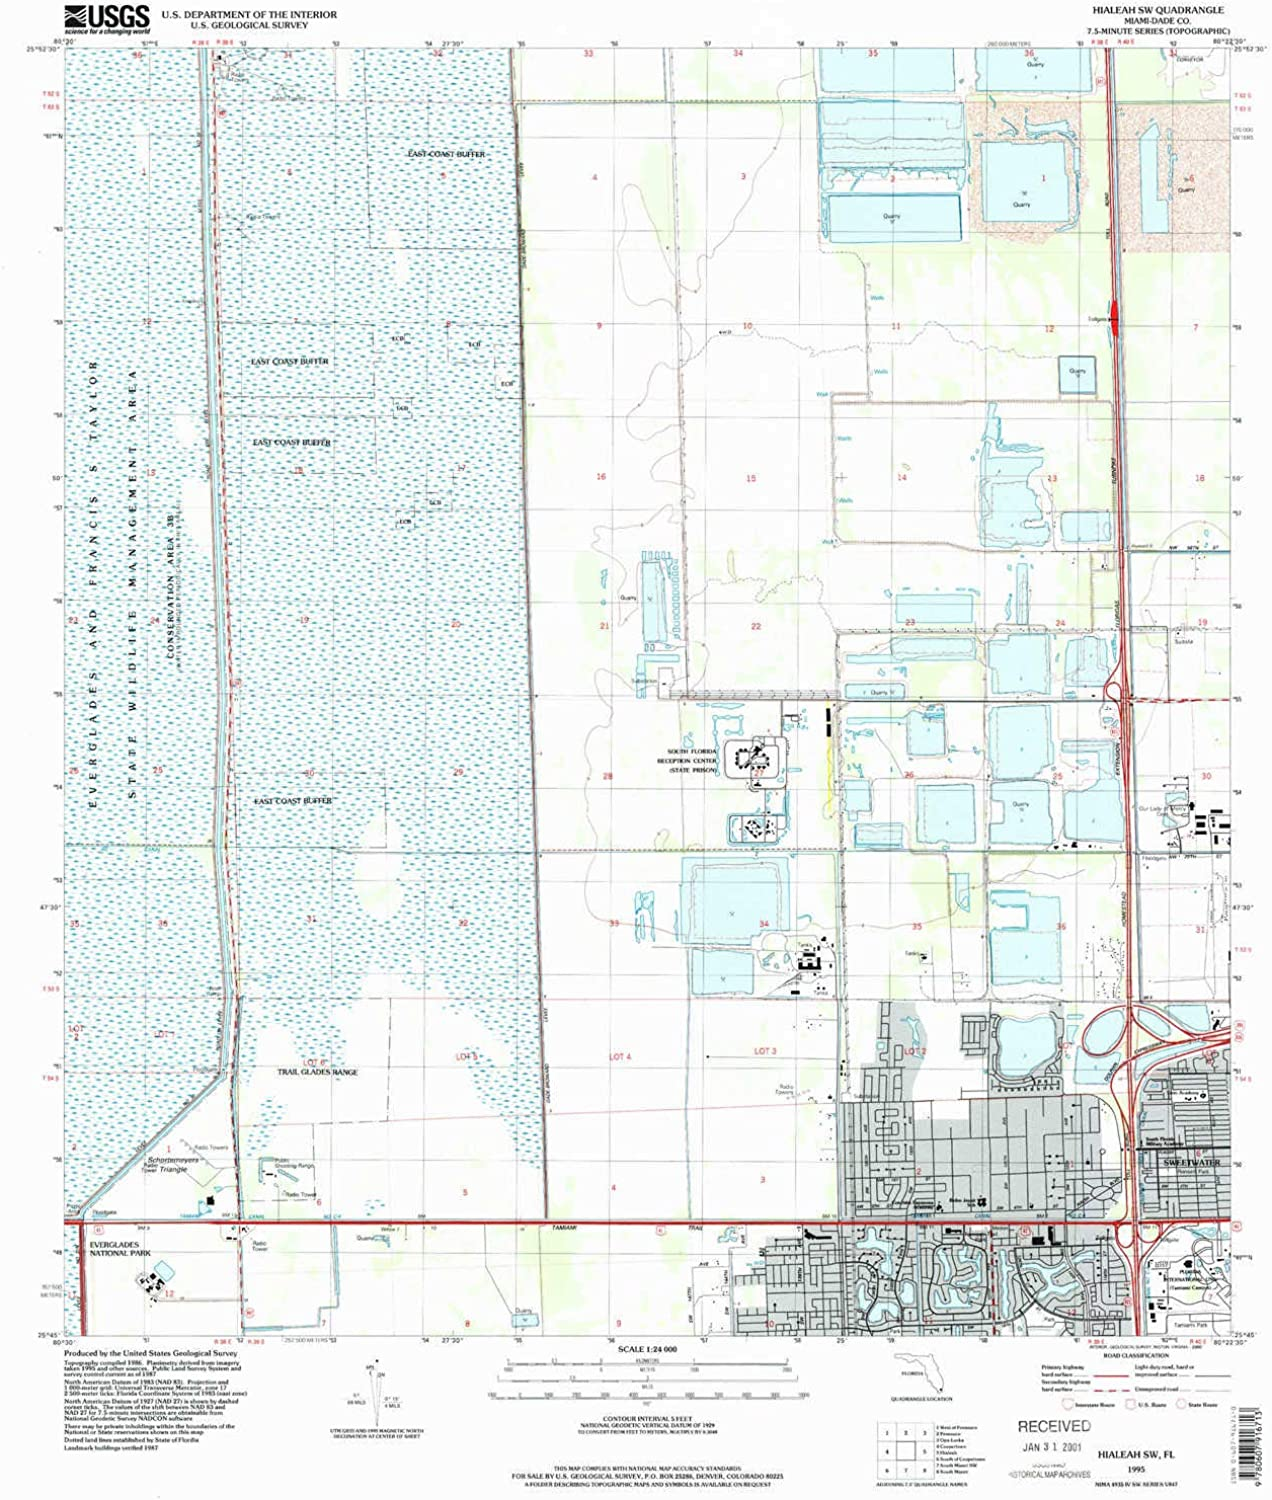 Hialeah SW FL topo map, 1 24000 Scale, 7.5 X 7.5 Minute, Historical, 1995, Updated 2000, 26.8 x 23 in